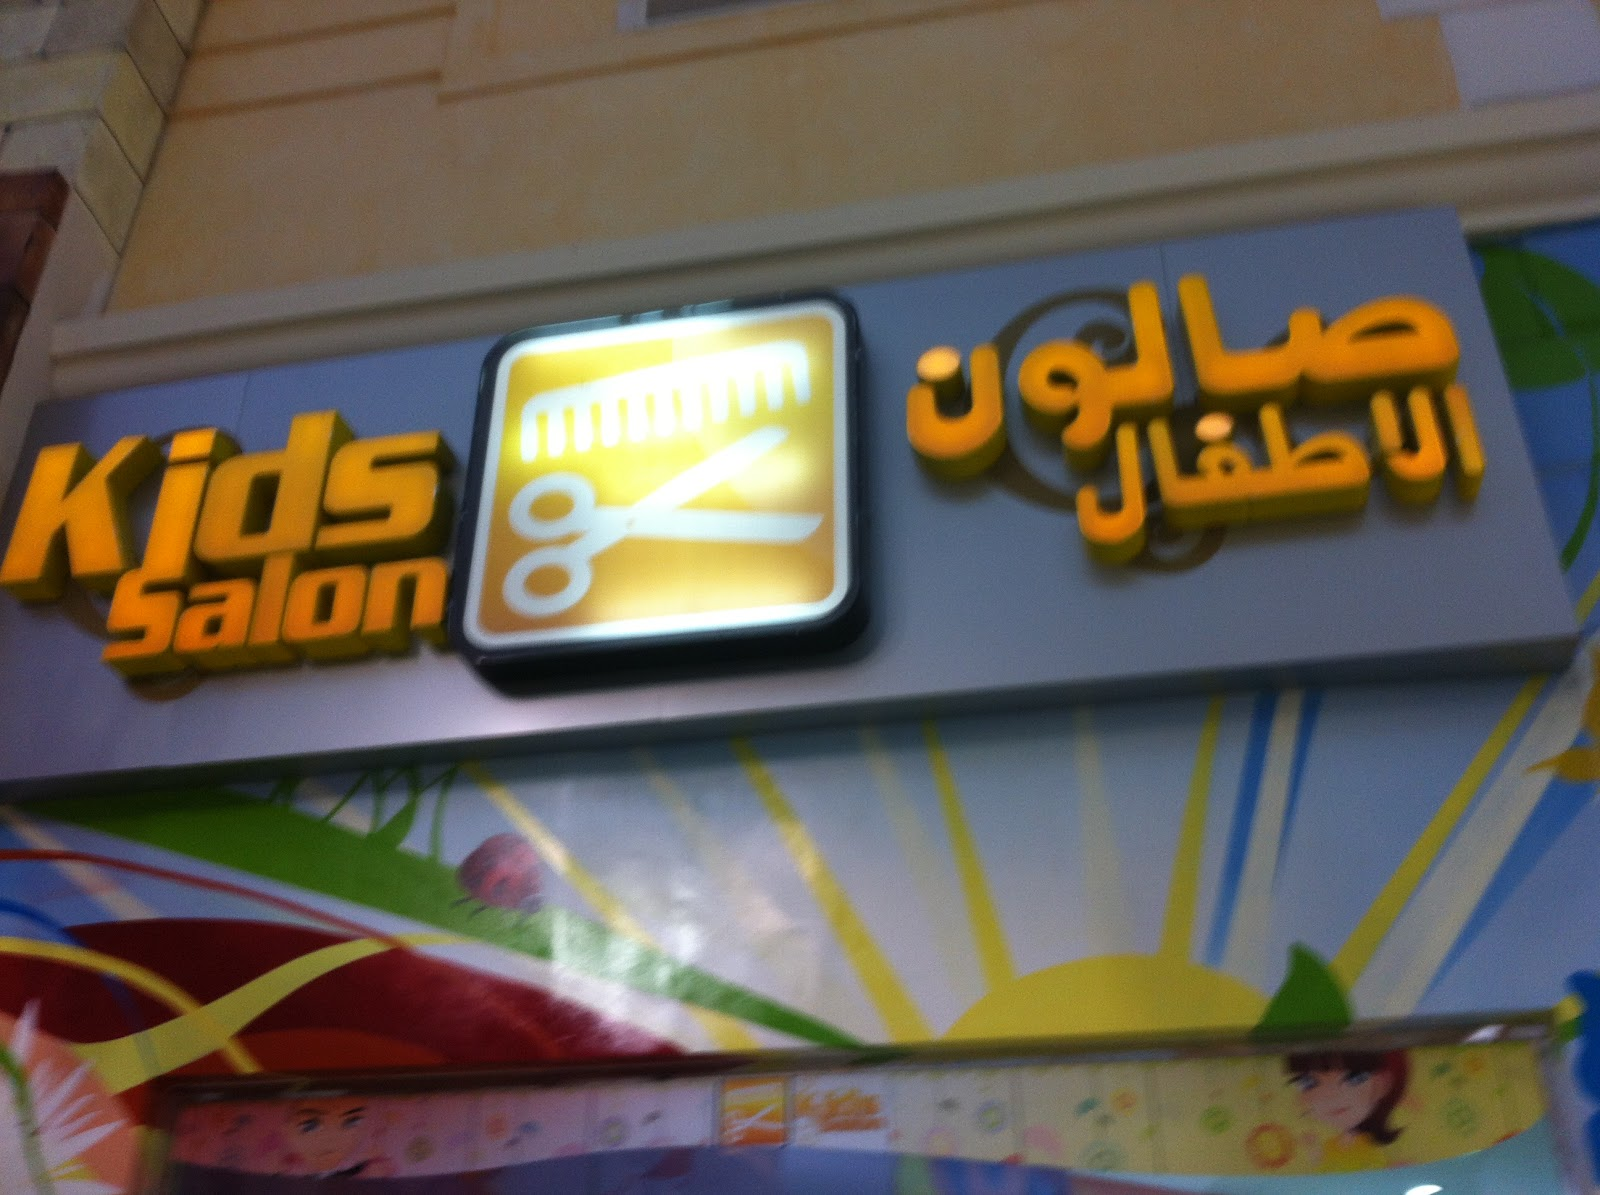 turknoy: kids salon in villagio mall - haircut for cute kids